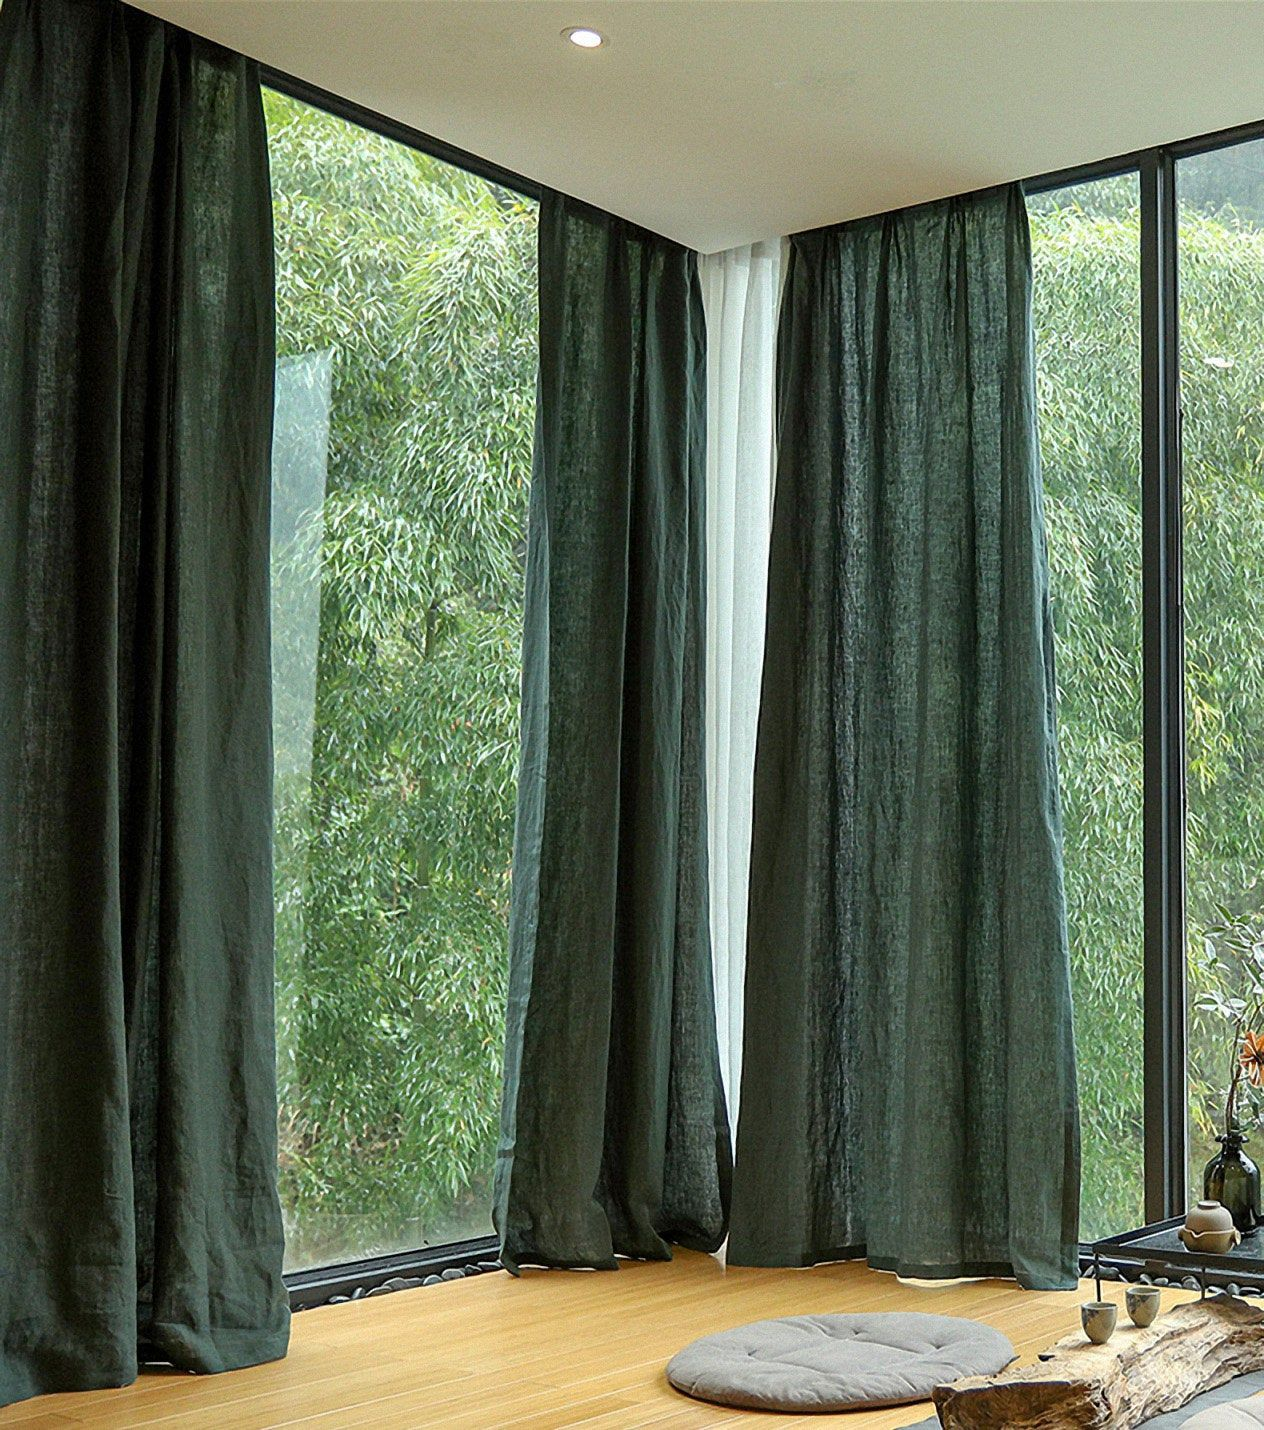 linen curtains green curtains bedroom